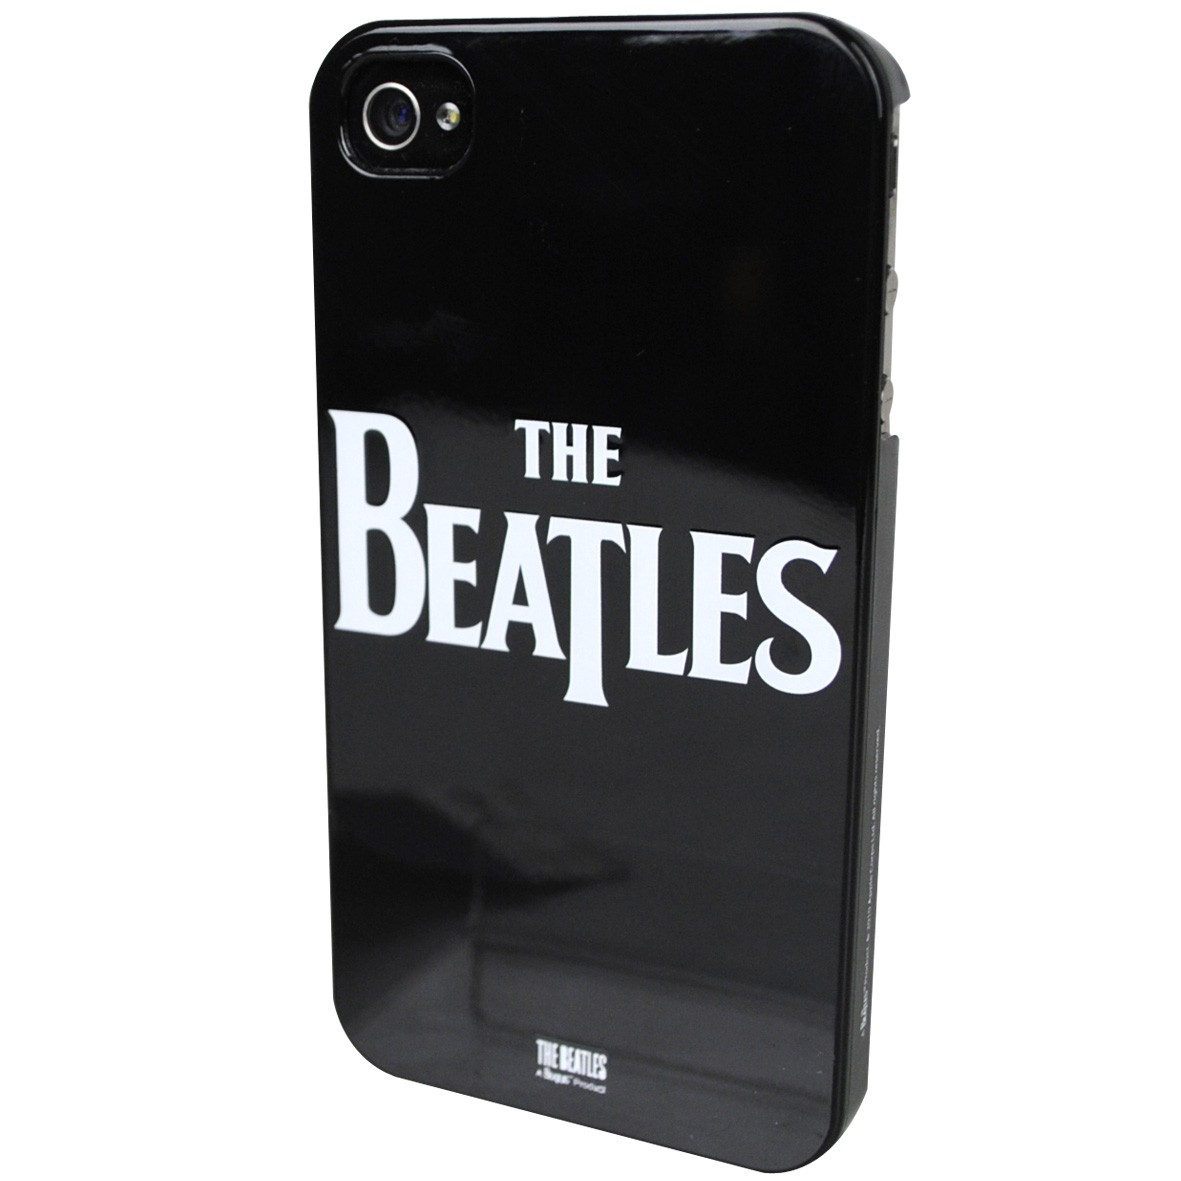 The Beatles Logo iPhone 4 & 4S Cover